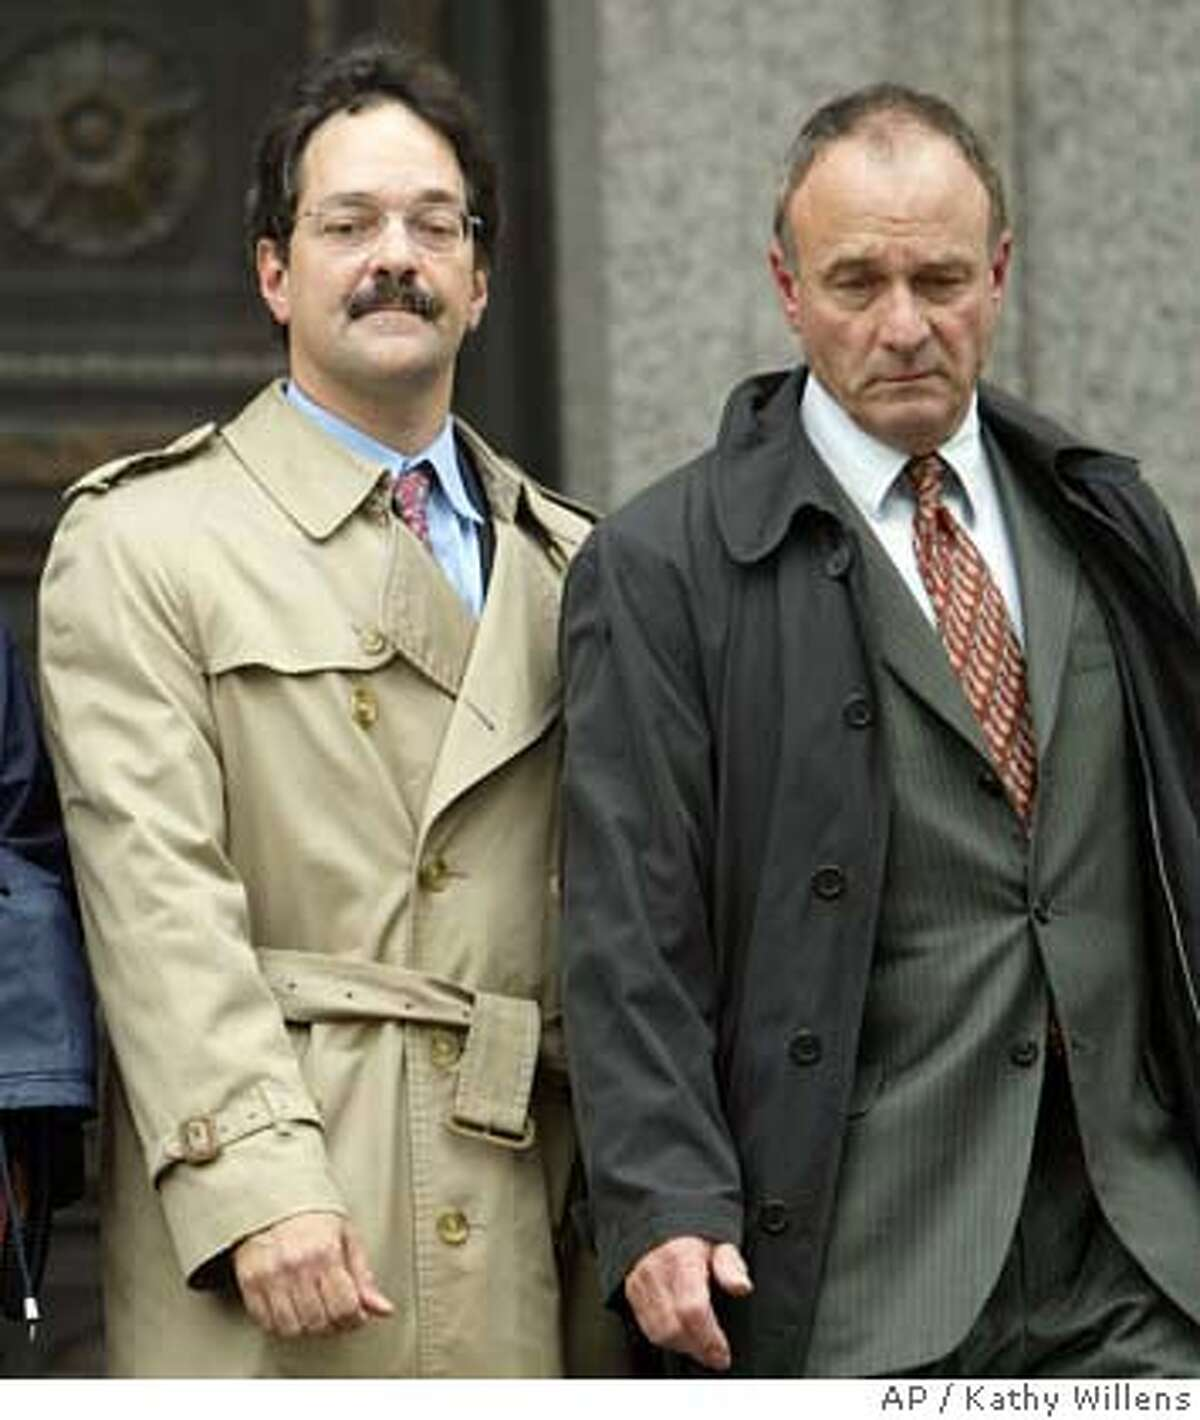 Former star investment banker Frank Quattrone, left, and his attorney John Keker leave Manhattan Federal Court, Monday, May 3, 2004, in New York, after Quattrone was found guilty on all counts in his retrial for obstructing a grand jury, obstructing federal regulators and witness tampering. (AP Photo/Kathy Willens)